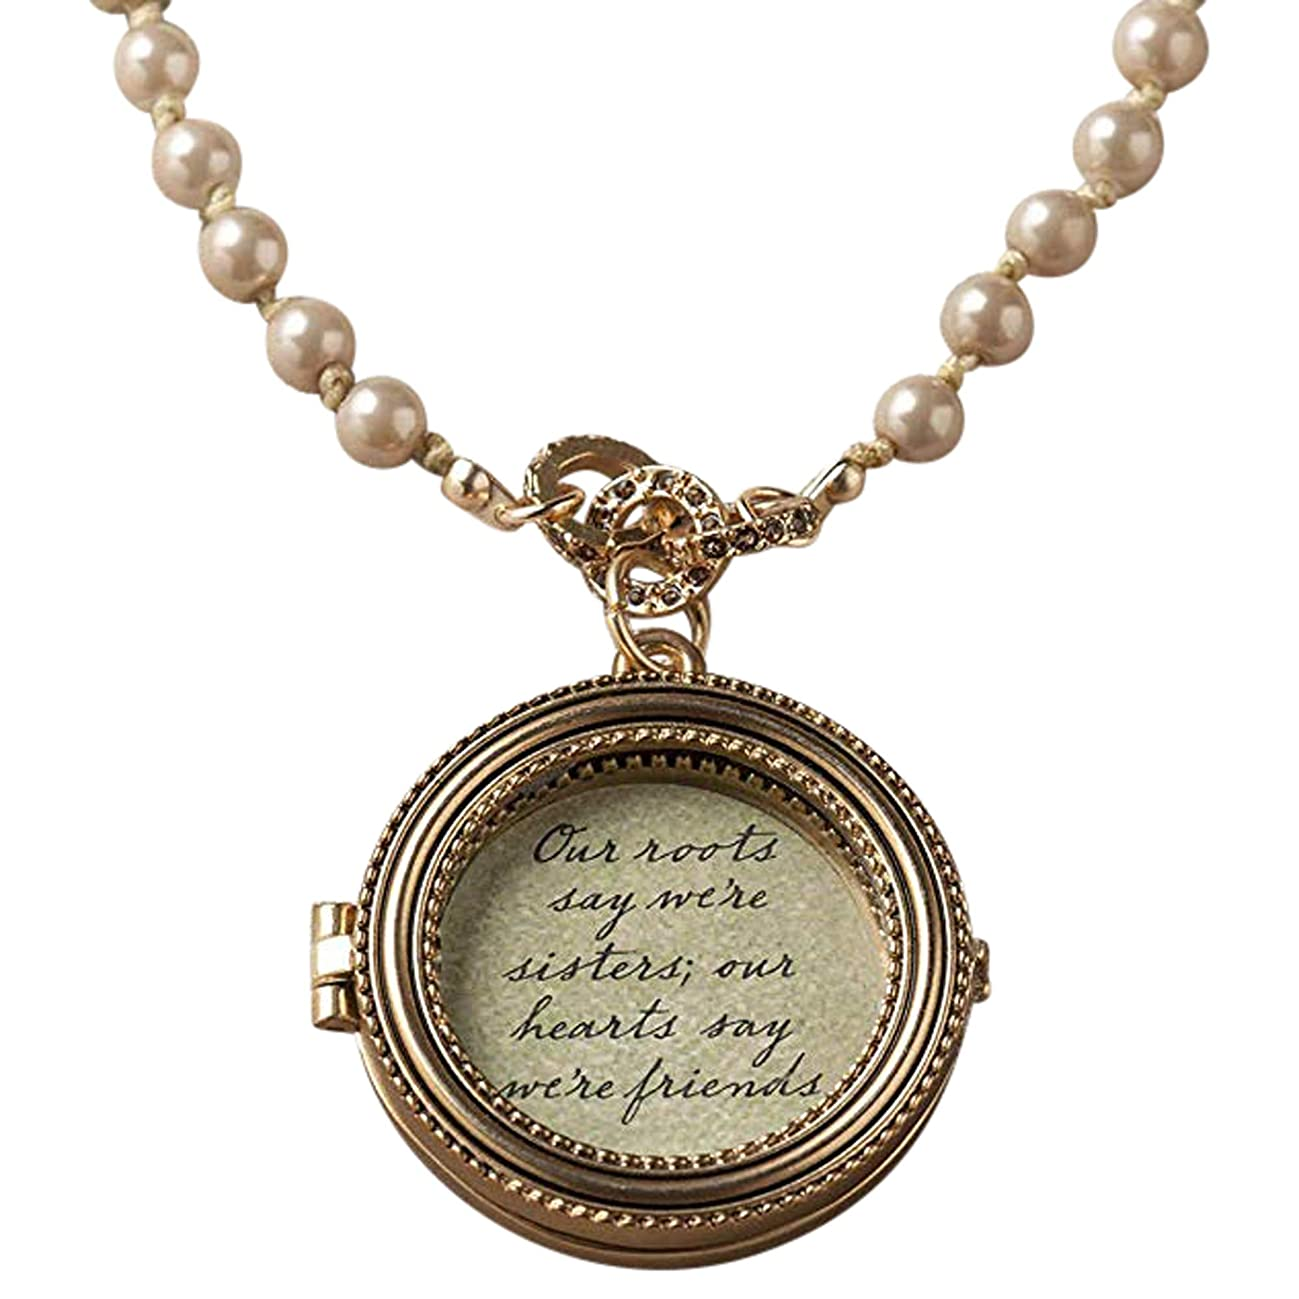 DEMDACO Sisters Hearts Friends Round Faux Pearl Beaded Women's One Size Zinc Alloy Locket Necklace